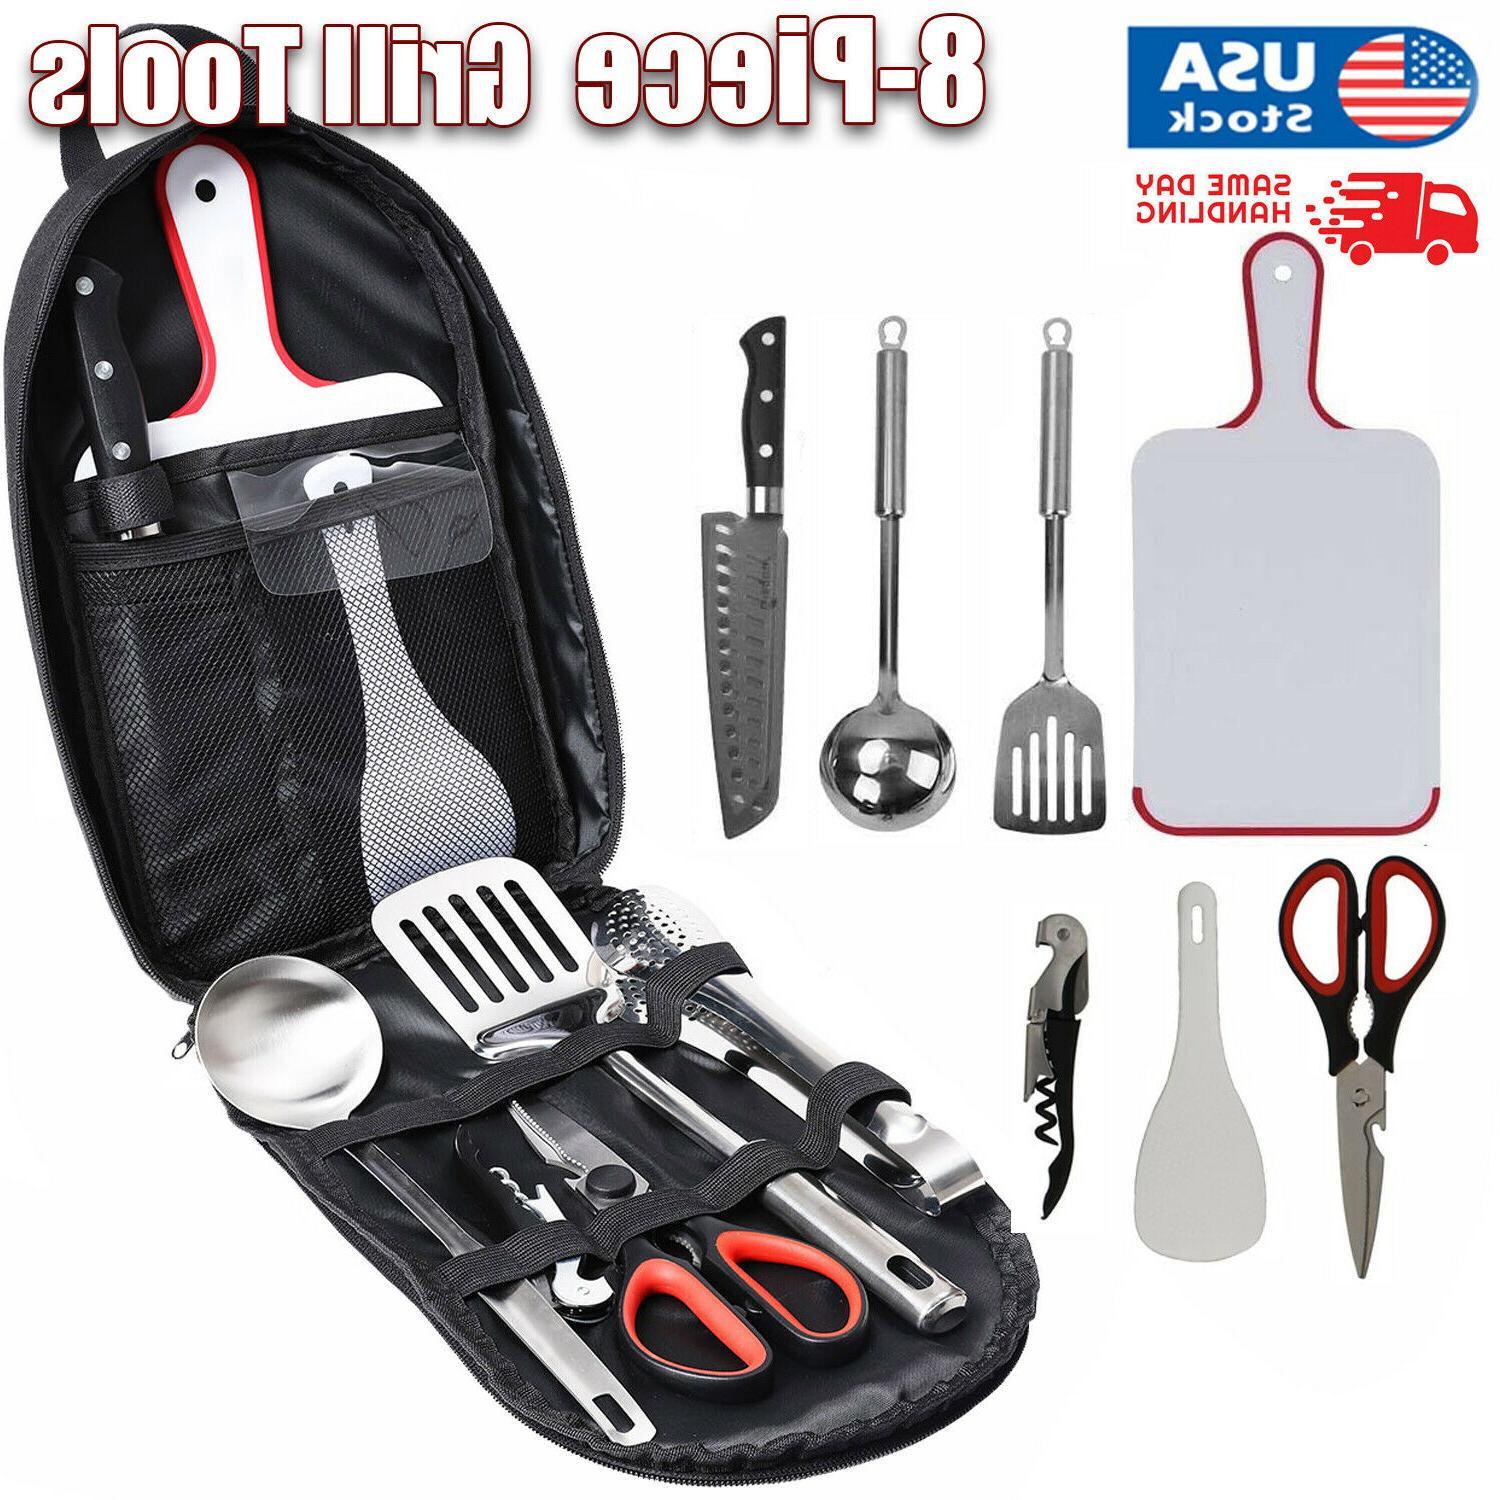 8 Piece Camping Cooking Utensils Set Outdoor Travel Camping